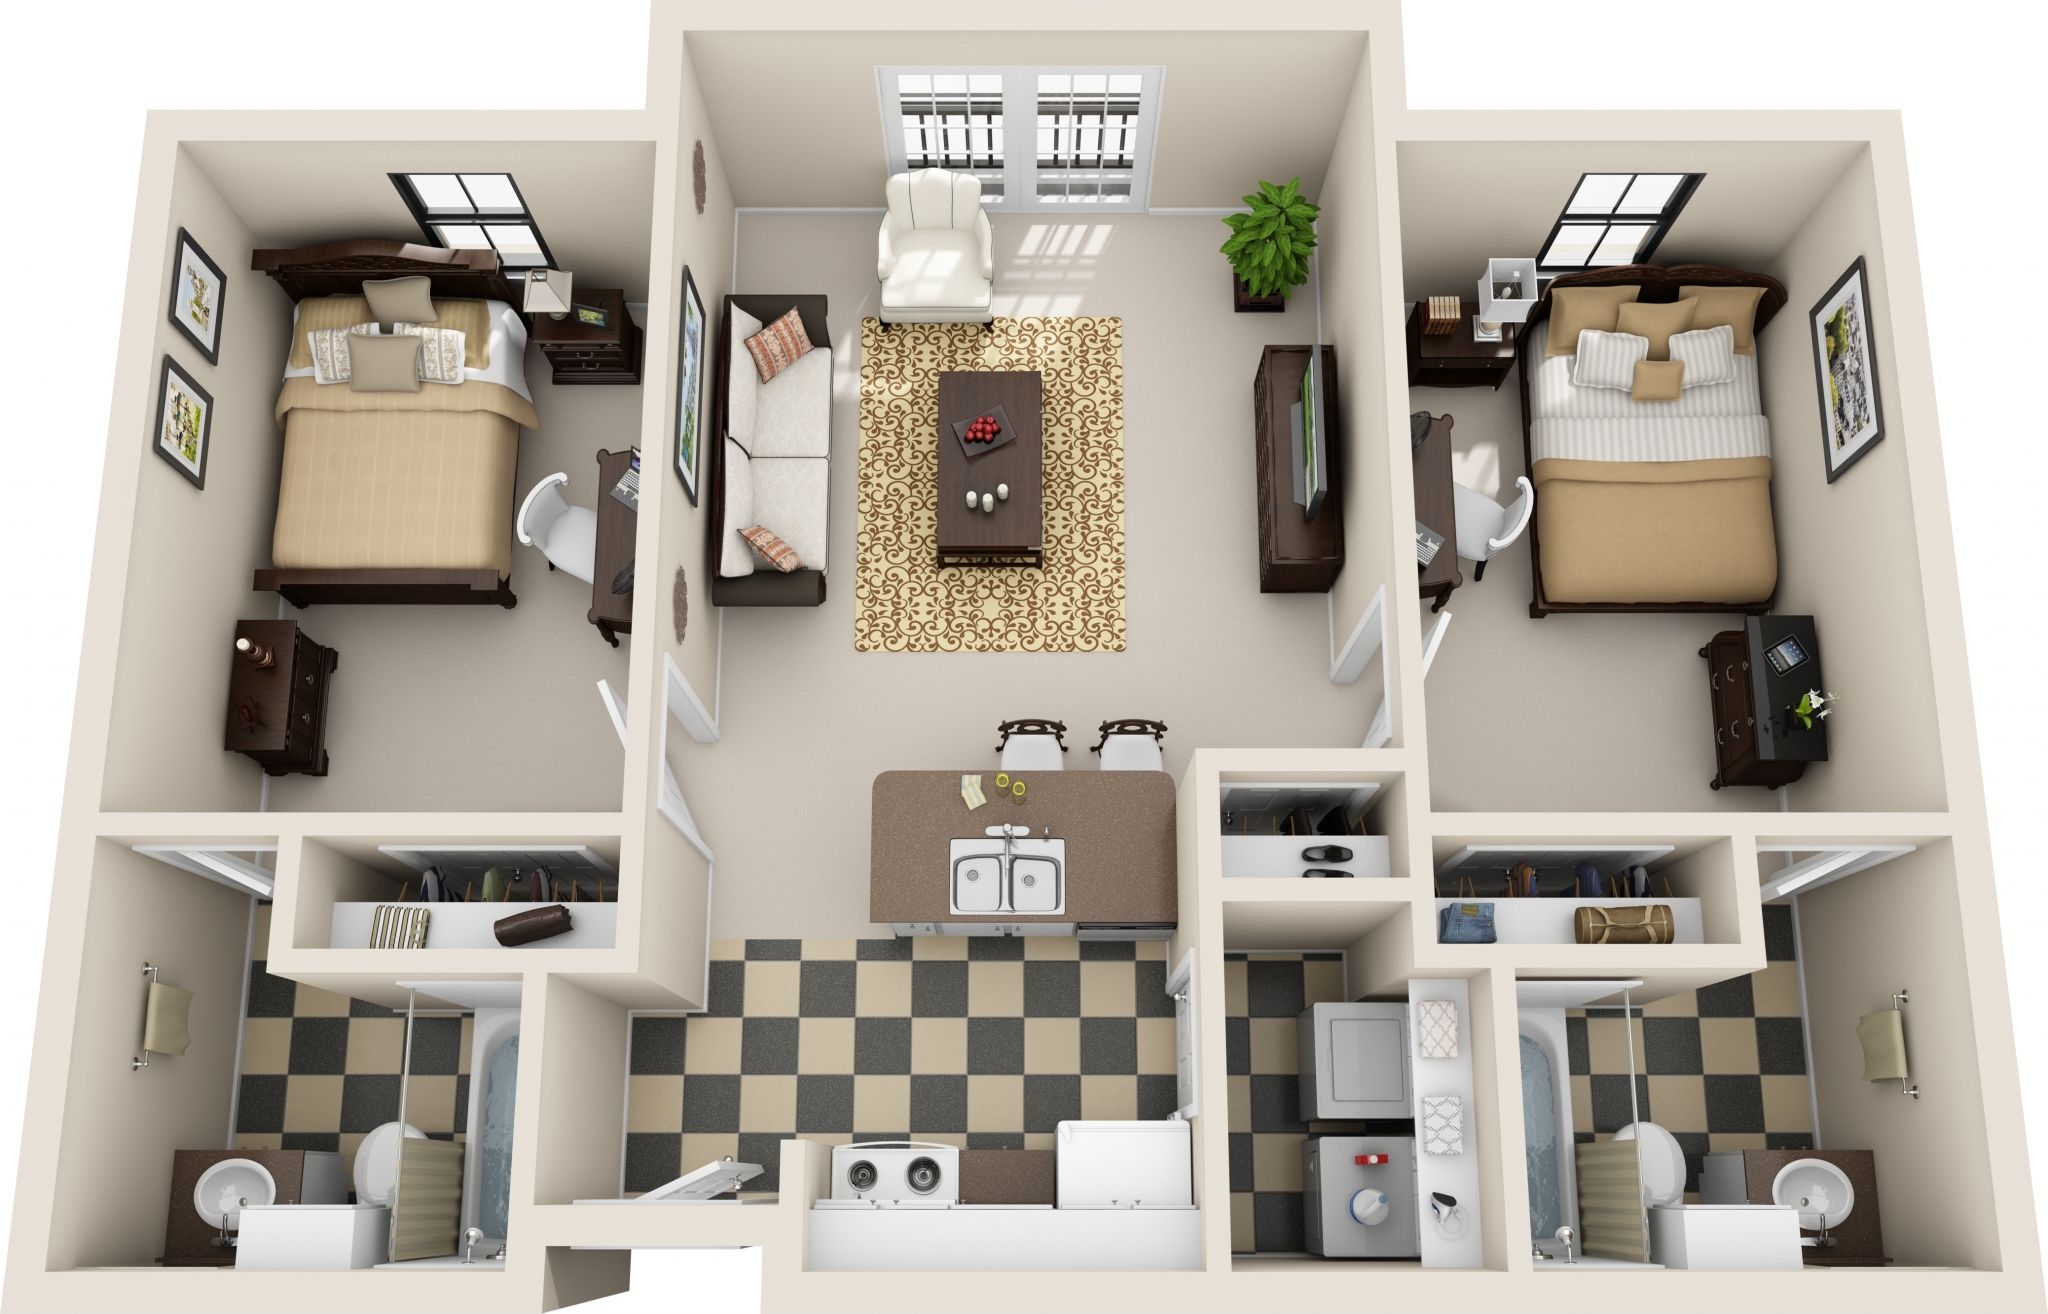 2 Bedroom Apartment 2 Bedroom Apartment Bedroom House Plans Renting A House